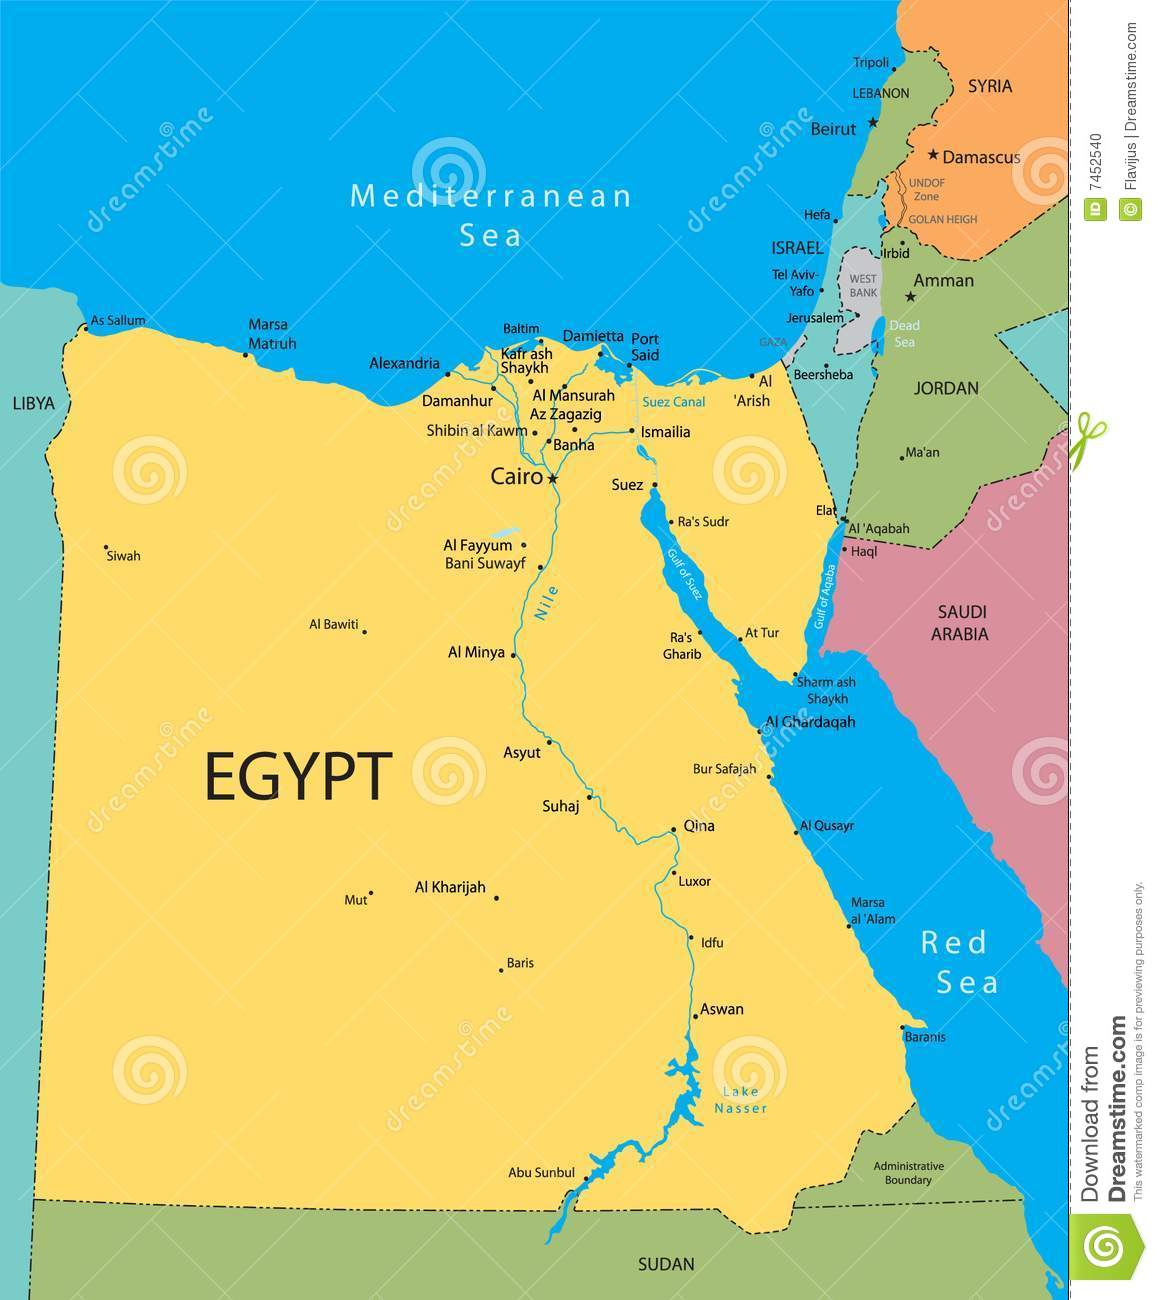 Mapofmap Sayfa - Map of egypt hd